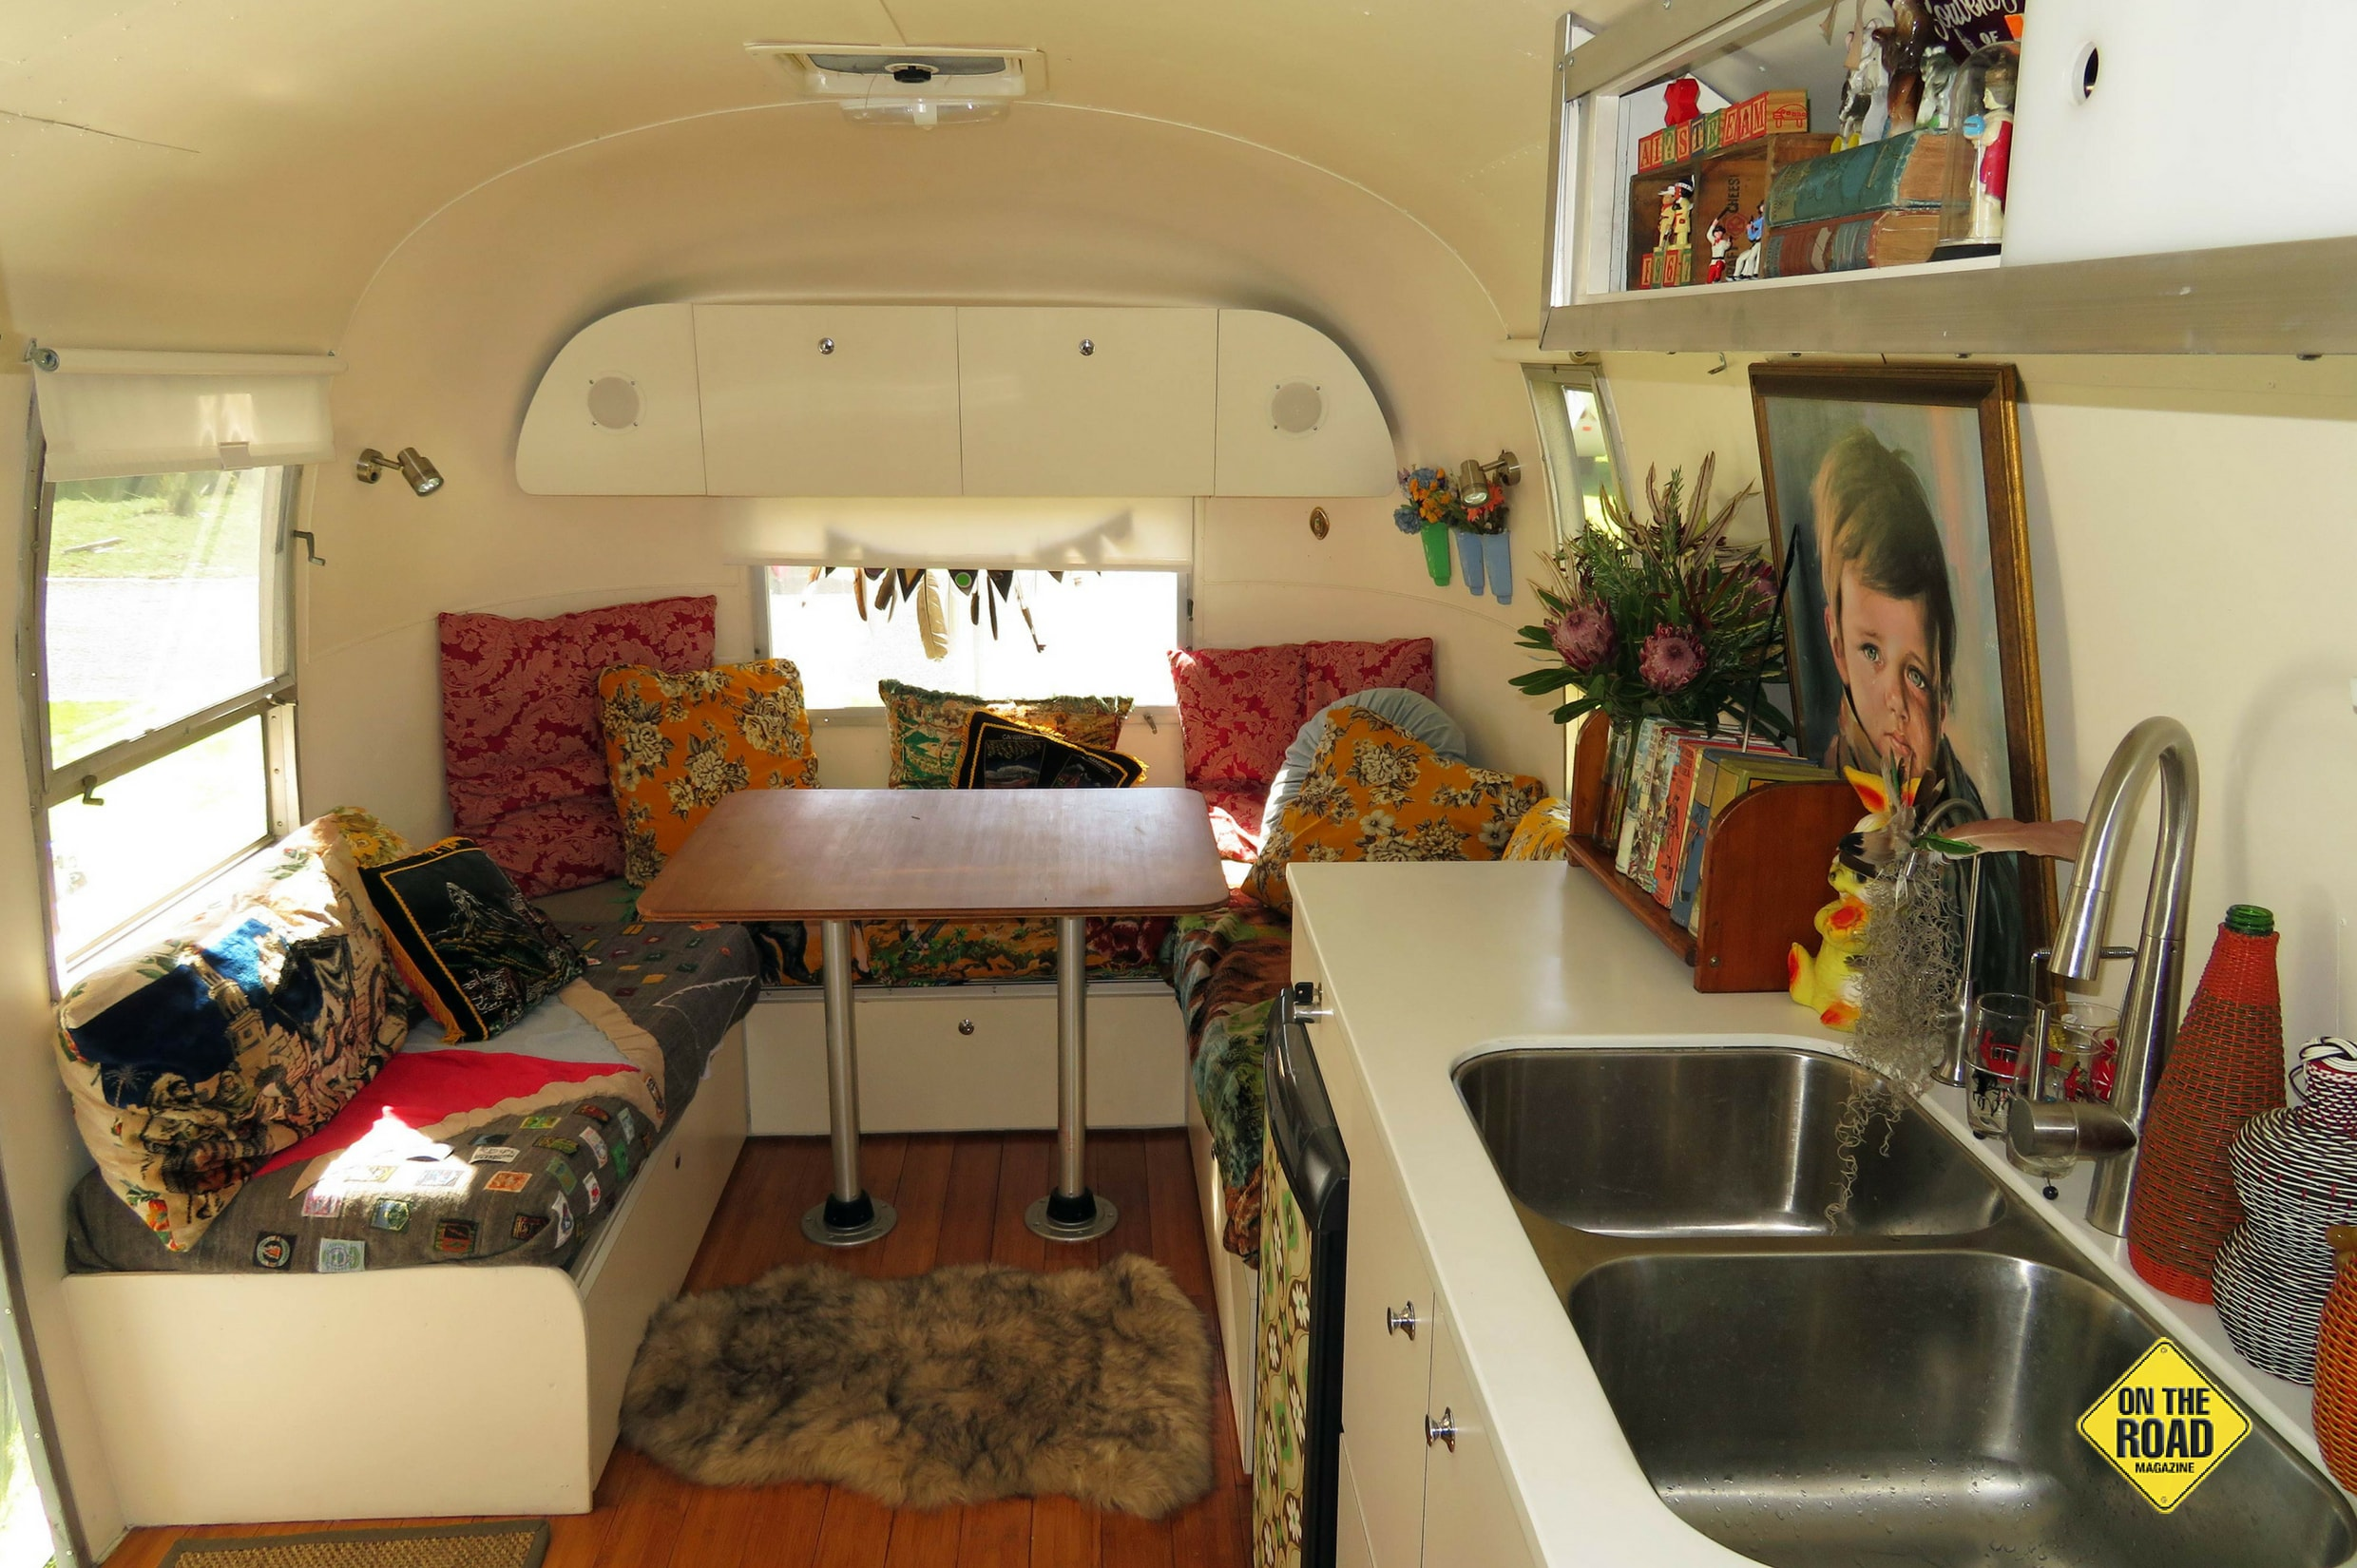 Looking towards the front of the spacious Airstream, with the lounge/dining area up front and kitchen in the middle